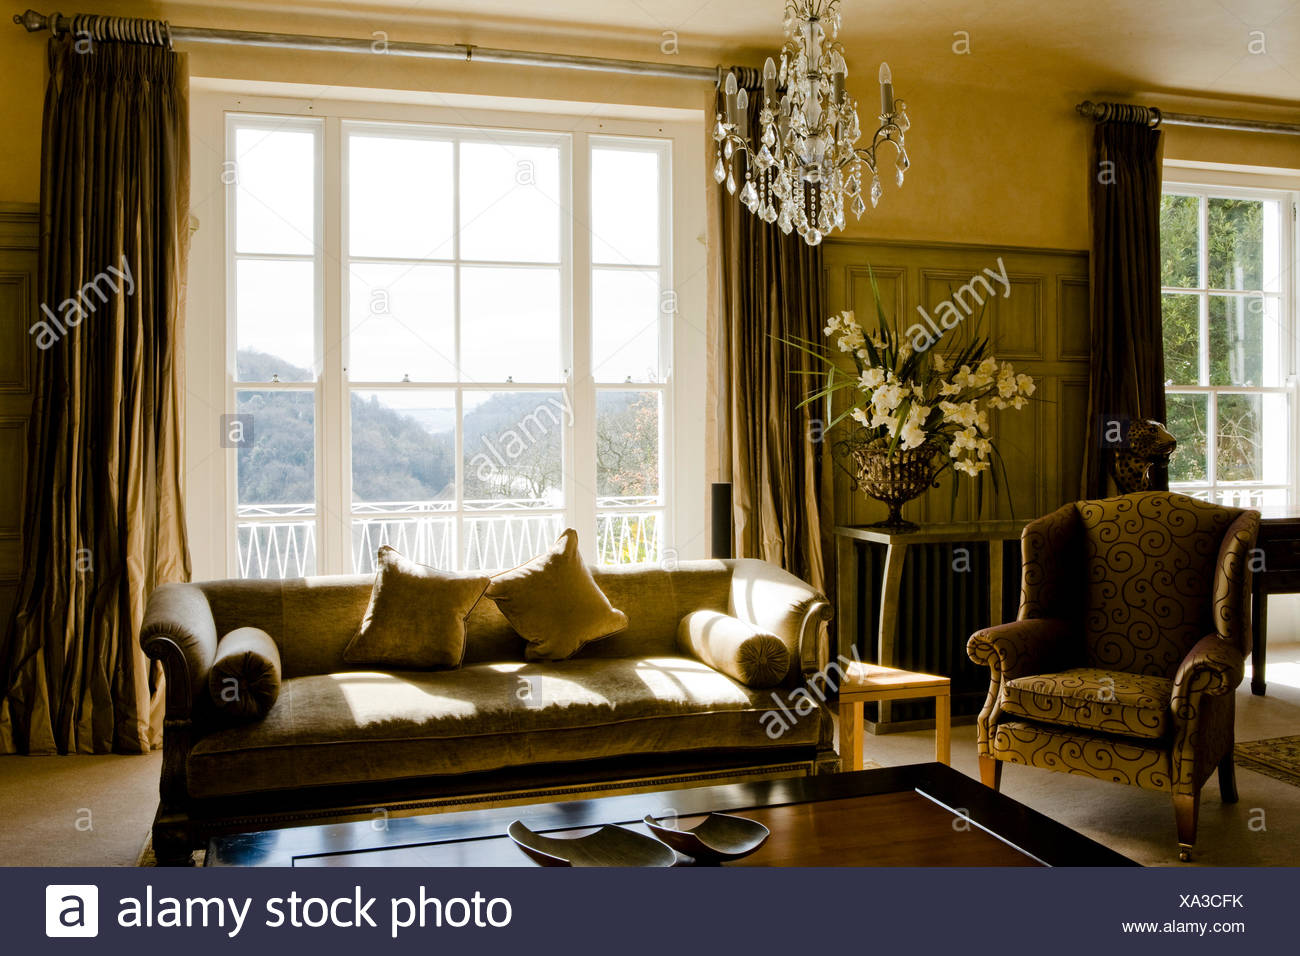 Awesome Beige Sofa And Patterned Armchair In Country Sitting Room With Silk Curtains